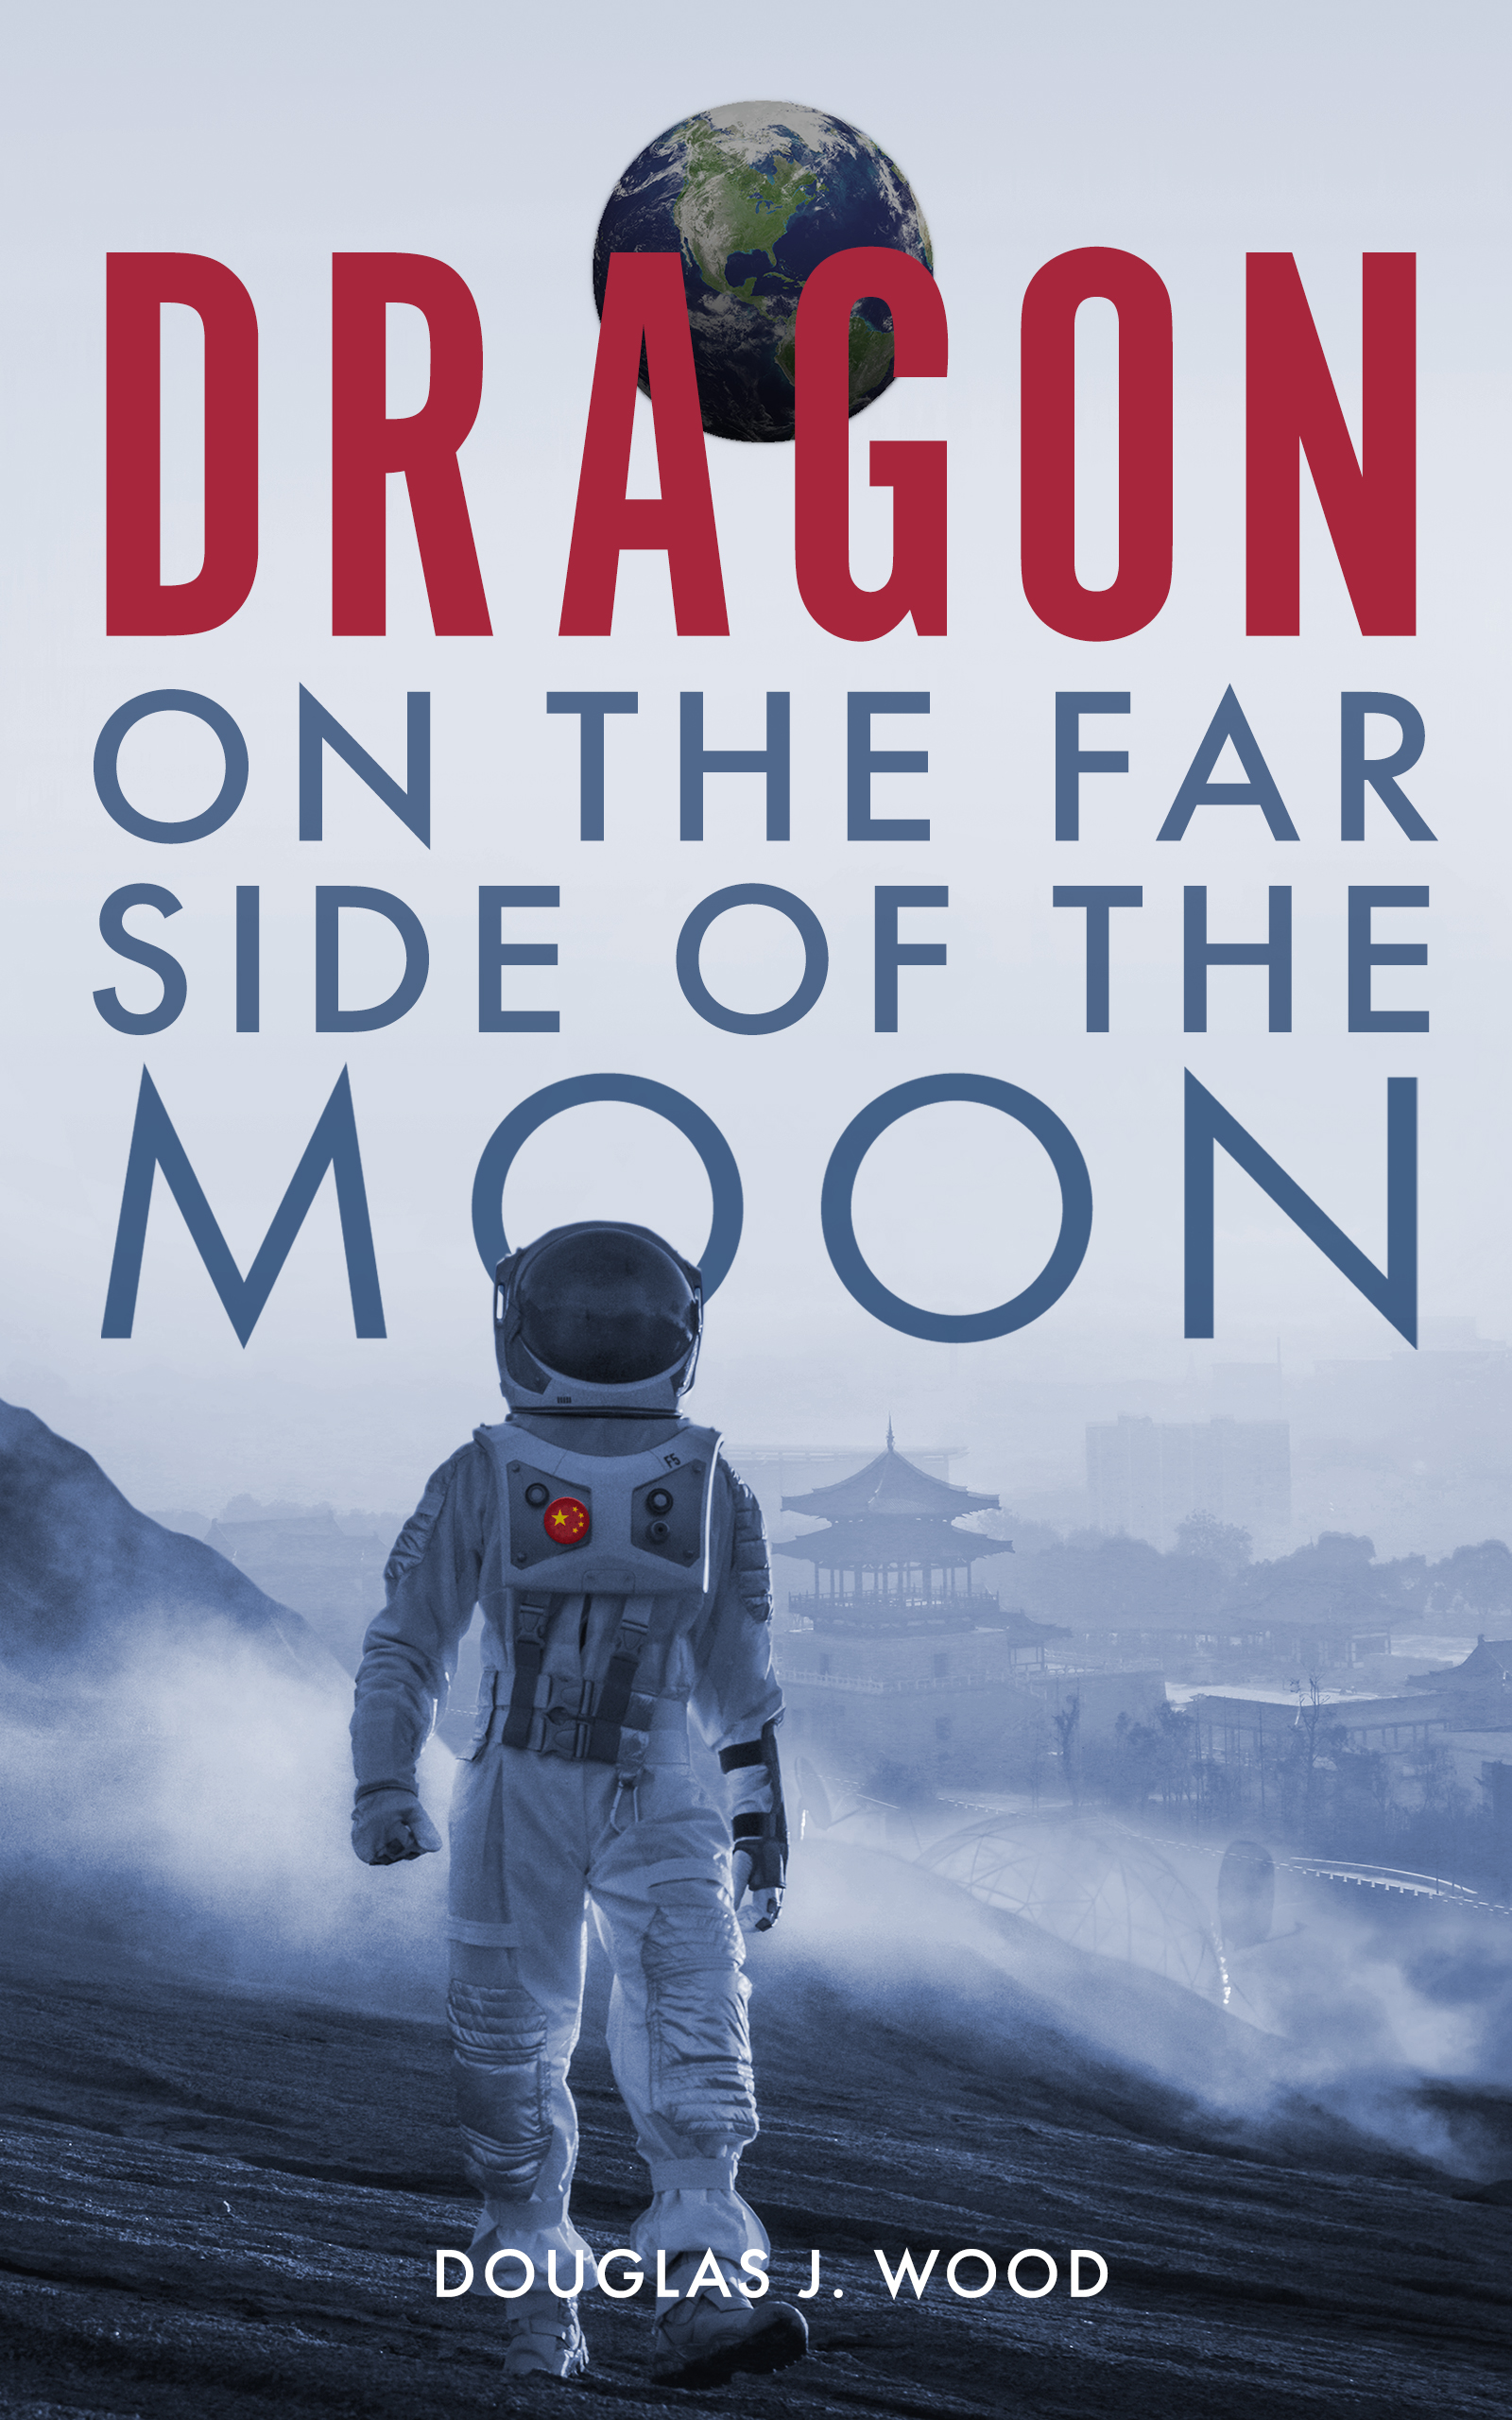 Dragon on the Far Side of the Moon by Douglas J. Wood